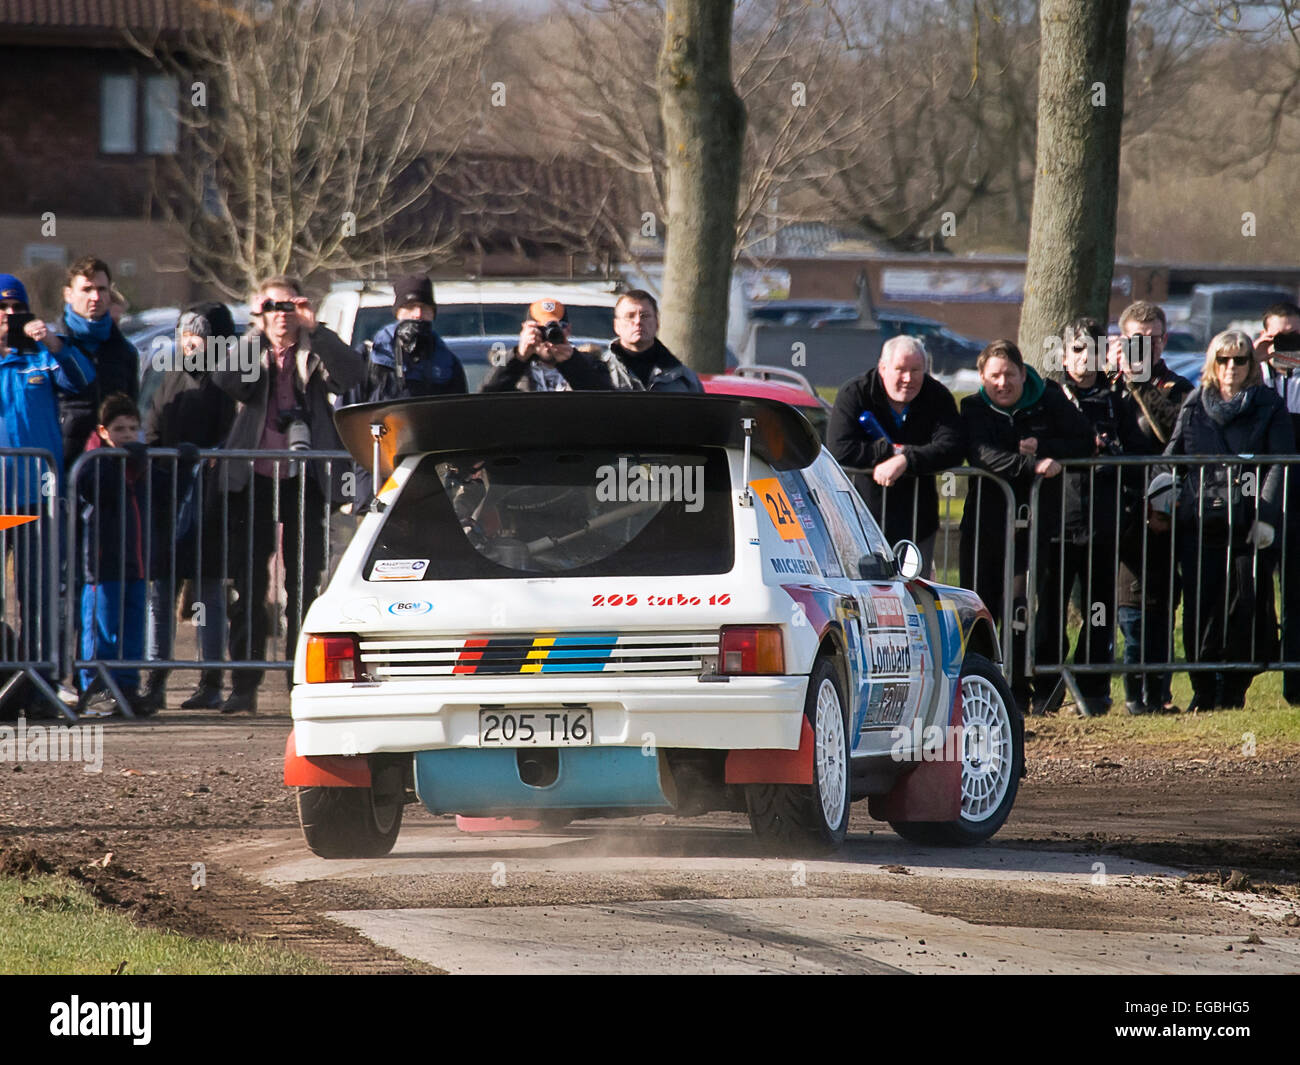 Warwickshire, UK. 21st Feb, 2015. Peugeot T16 Rally car on Race Retro special stage 21/02/2015 Credit:  Martyn Goddard/Alamy - Stock Image